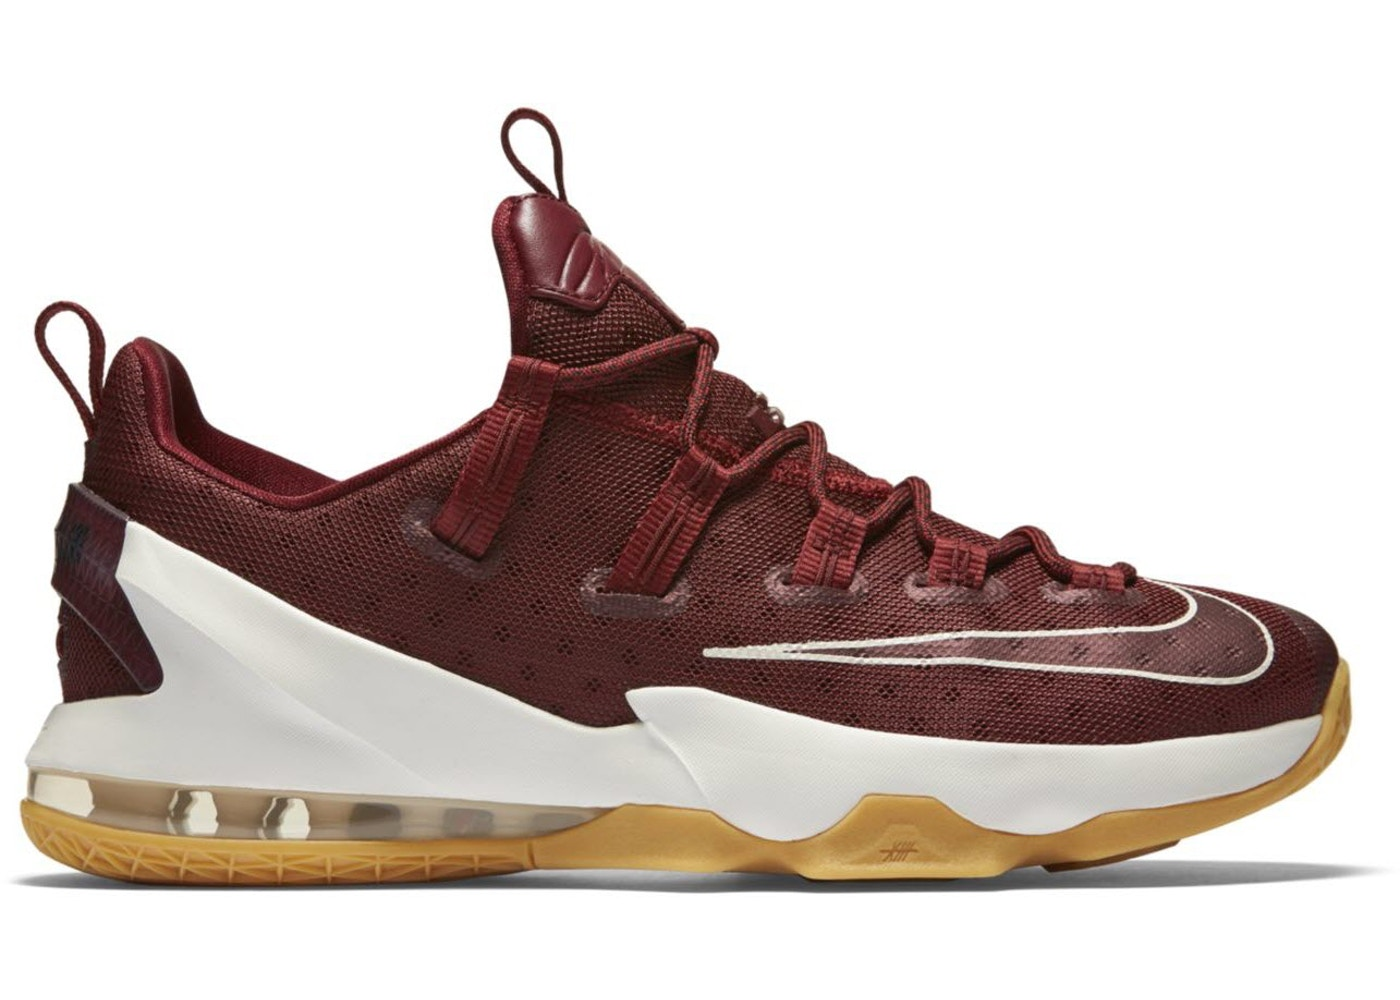 half off 9894f 51e21 LeBron 13 Low Cavs - 831925-610